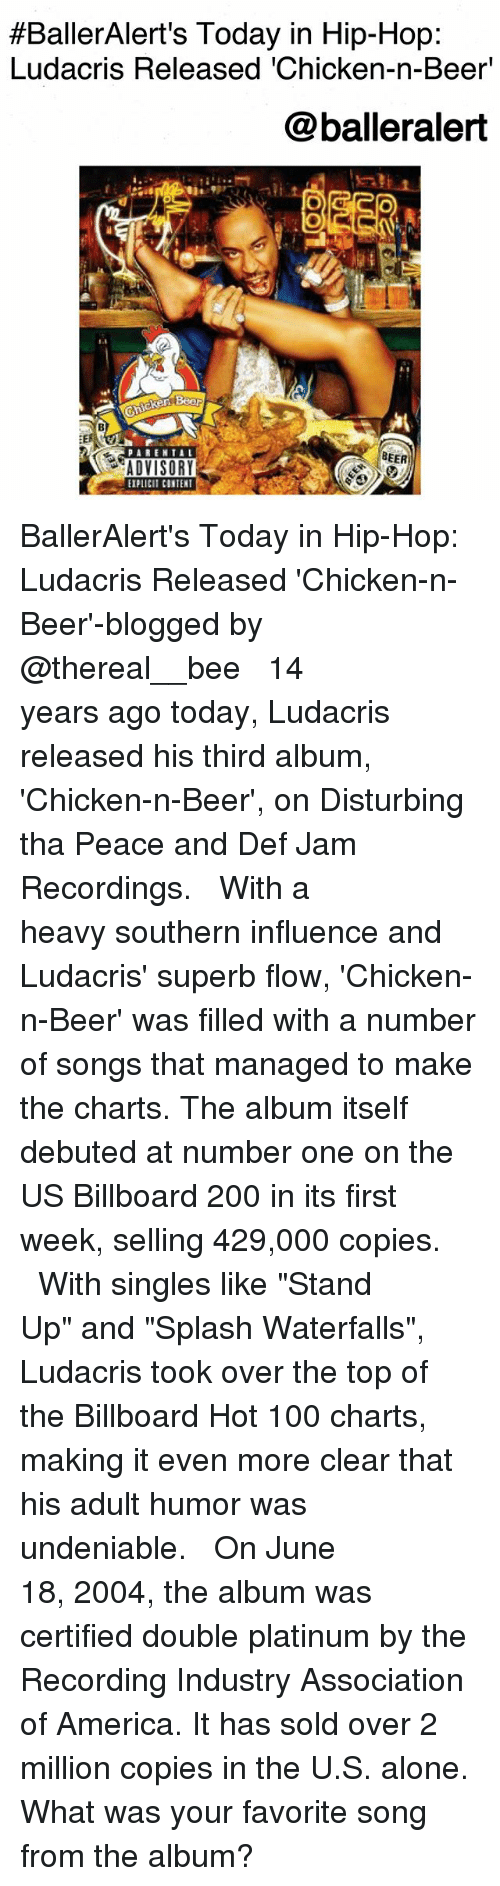 """debuted:  #BallerAlert's Today in Hip-Hop:  Ludacris Released 'Chicken-n-Beer'  @balleralert  BEER  ADVISORY  EIPLICIT CONTENT BallerAlert's Today in Hip-Hop: Ludacris Released 'Chicken-n-Beer'-blogged by @thereal__bee ⠀⠀⠀⠀⠀⠀⠀⠀⠀ ⠀⠀ 14 years ago today, Ludacris released his third album, 'Chicken-n-Beer', on Disturbing tha Peace and Def Jam Recordings. ⠀⠀⠀⠀⠀⠀⠀⠀⠀ ⠀⠀ With a heavy southern influence and Ludacris' superb flow, 'Chicken-n-Beer' was filled with a number of songs that managed to make the charts. The album itself debuted at number one on the US Billboard 200 in its first week, selling 429,000 copies. ⠀⠀⠀⠀⠀⠀⠀⠀⠀ ⠀⠀ With singles like """"Stand Up"""" and """"Splash Waterfalls"""", Ludacris took over the top of the Billboard Hot 100 charts, making it even more clear that his adult humor was undeniable. ⠀⠀⠀⠀⠀⠀⠀⠀⠀ ⠀⠀ On June 18, 2004, the album was certified double platinum by the Recording Industry Association of America. It has sold over 2 million copies in the U.S. alone. What was your favorite song from the album?"""